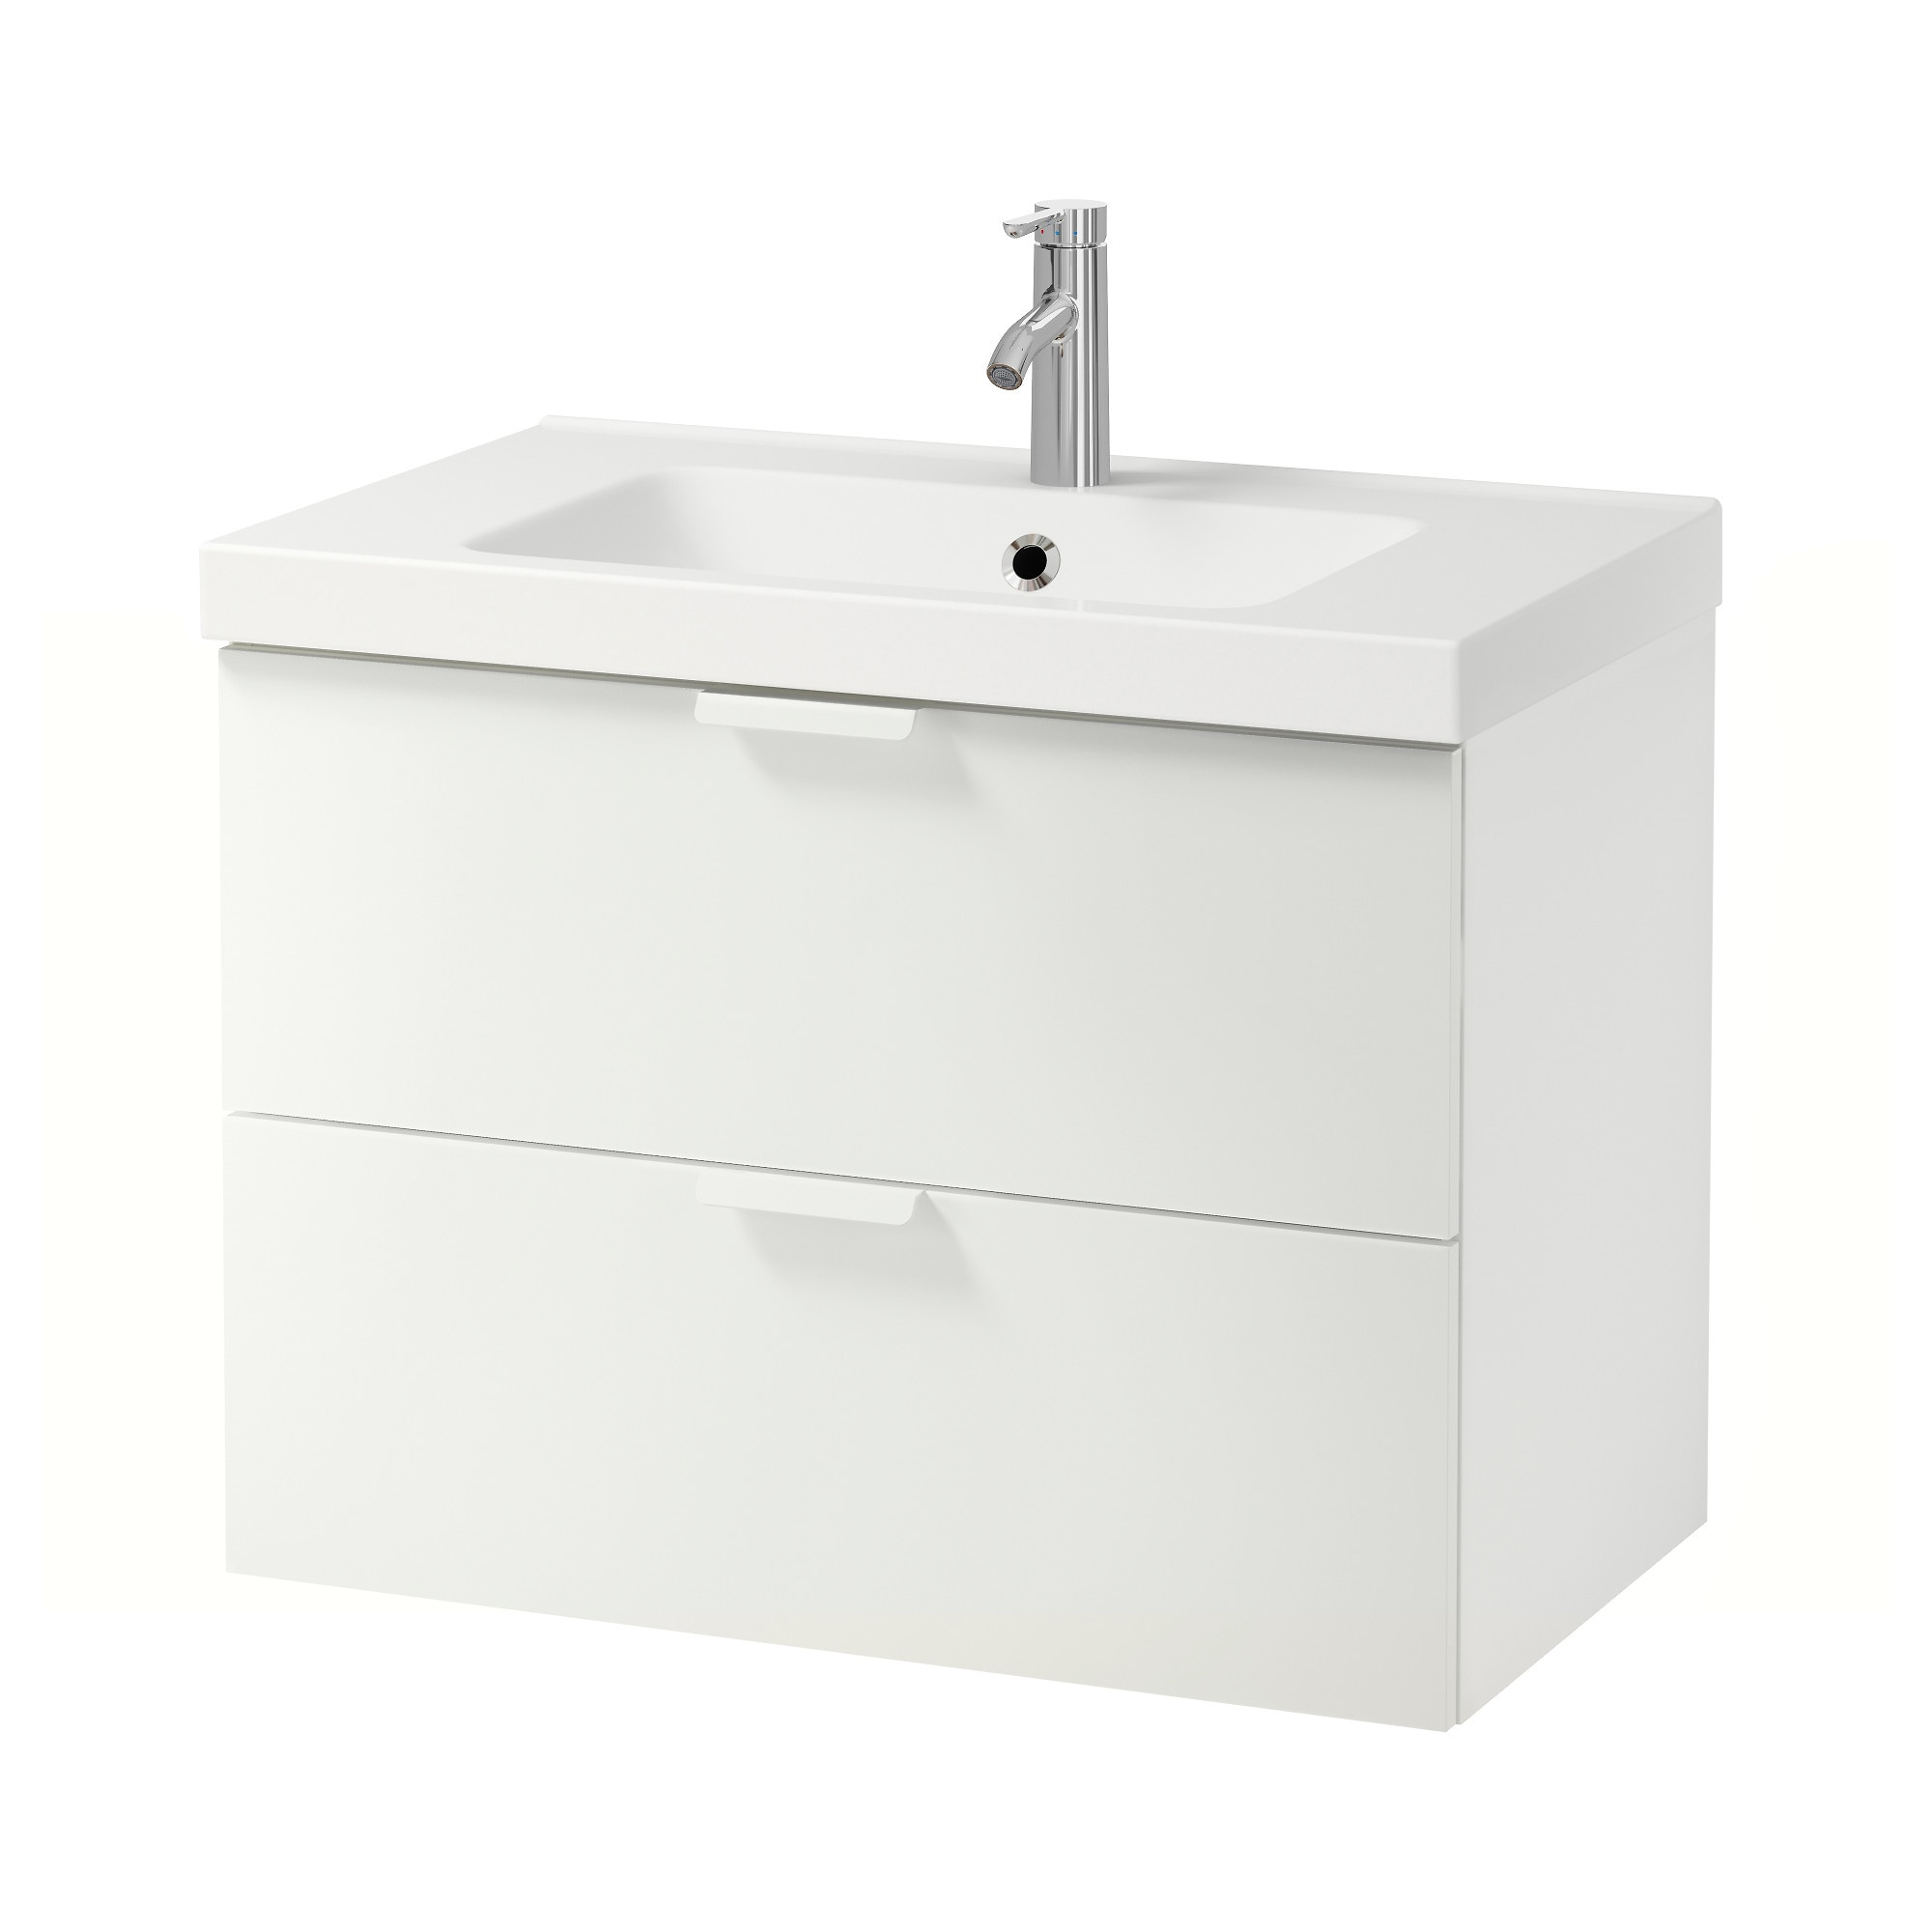 Design Sink Cabinets godmorgon odensvik sink cabinet with 2 drawers black brown 31 12x19 14x25 14 ikea